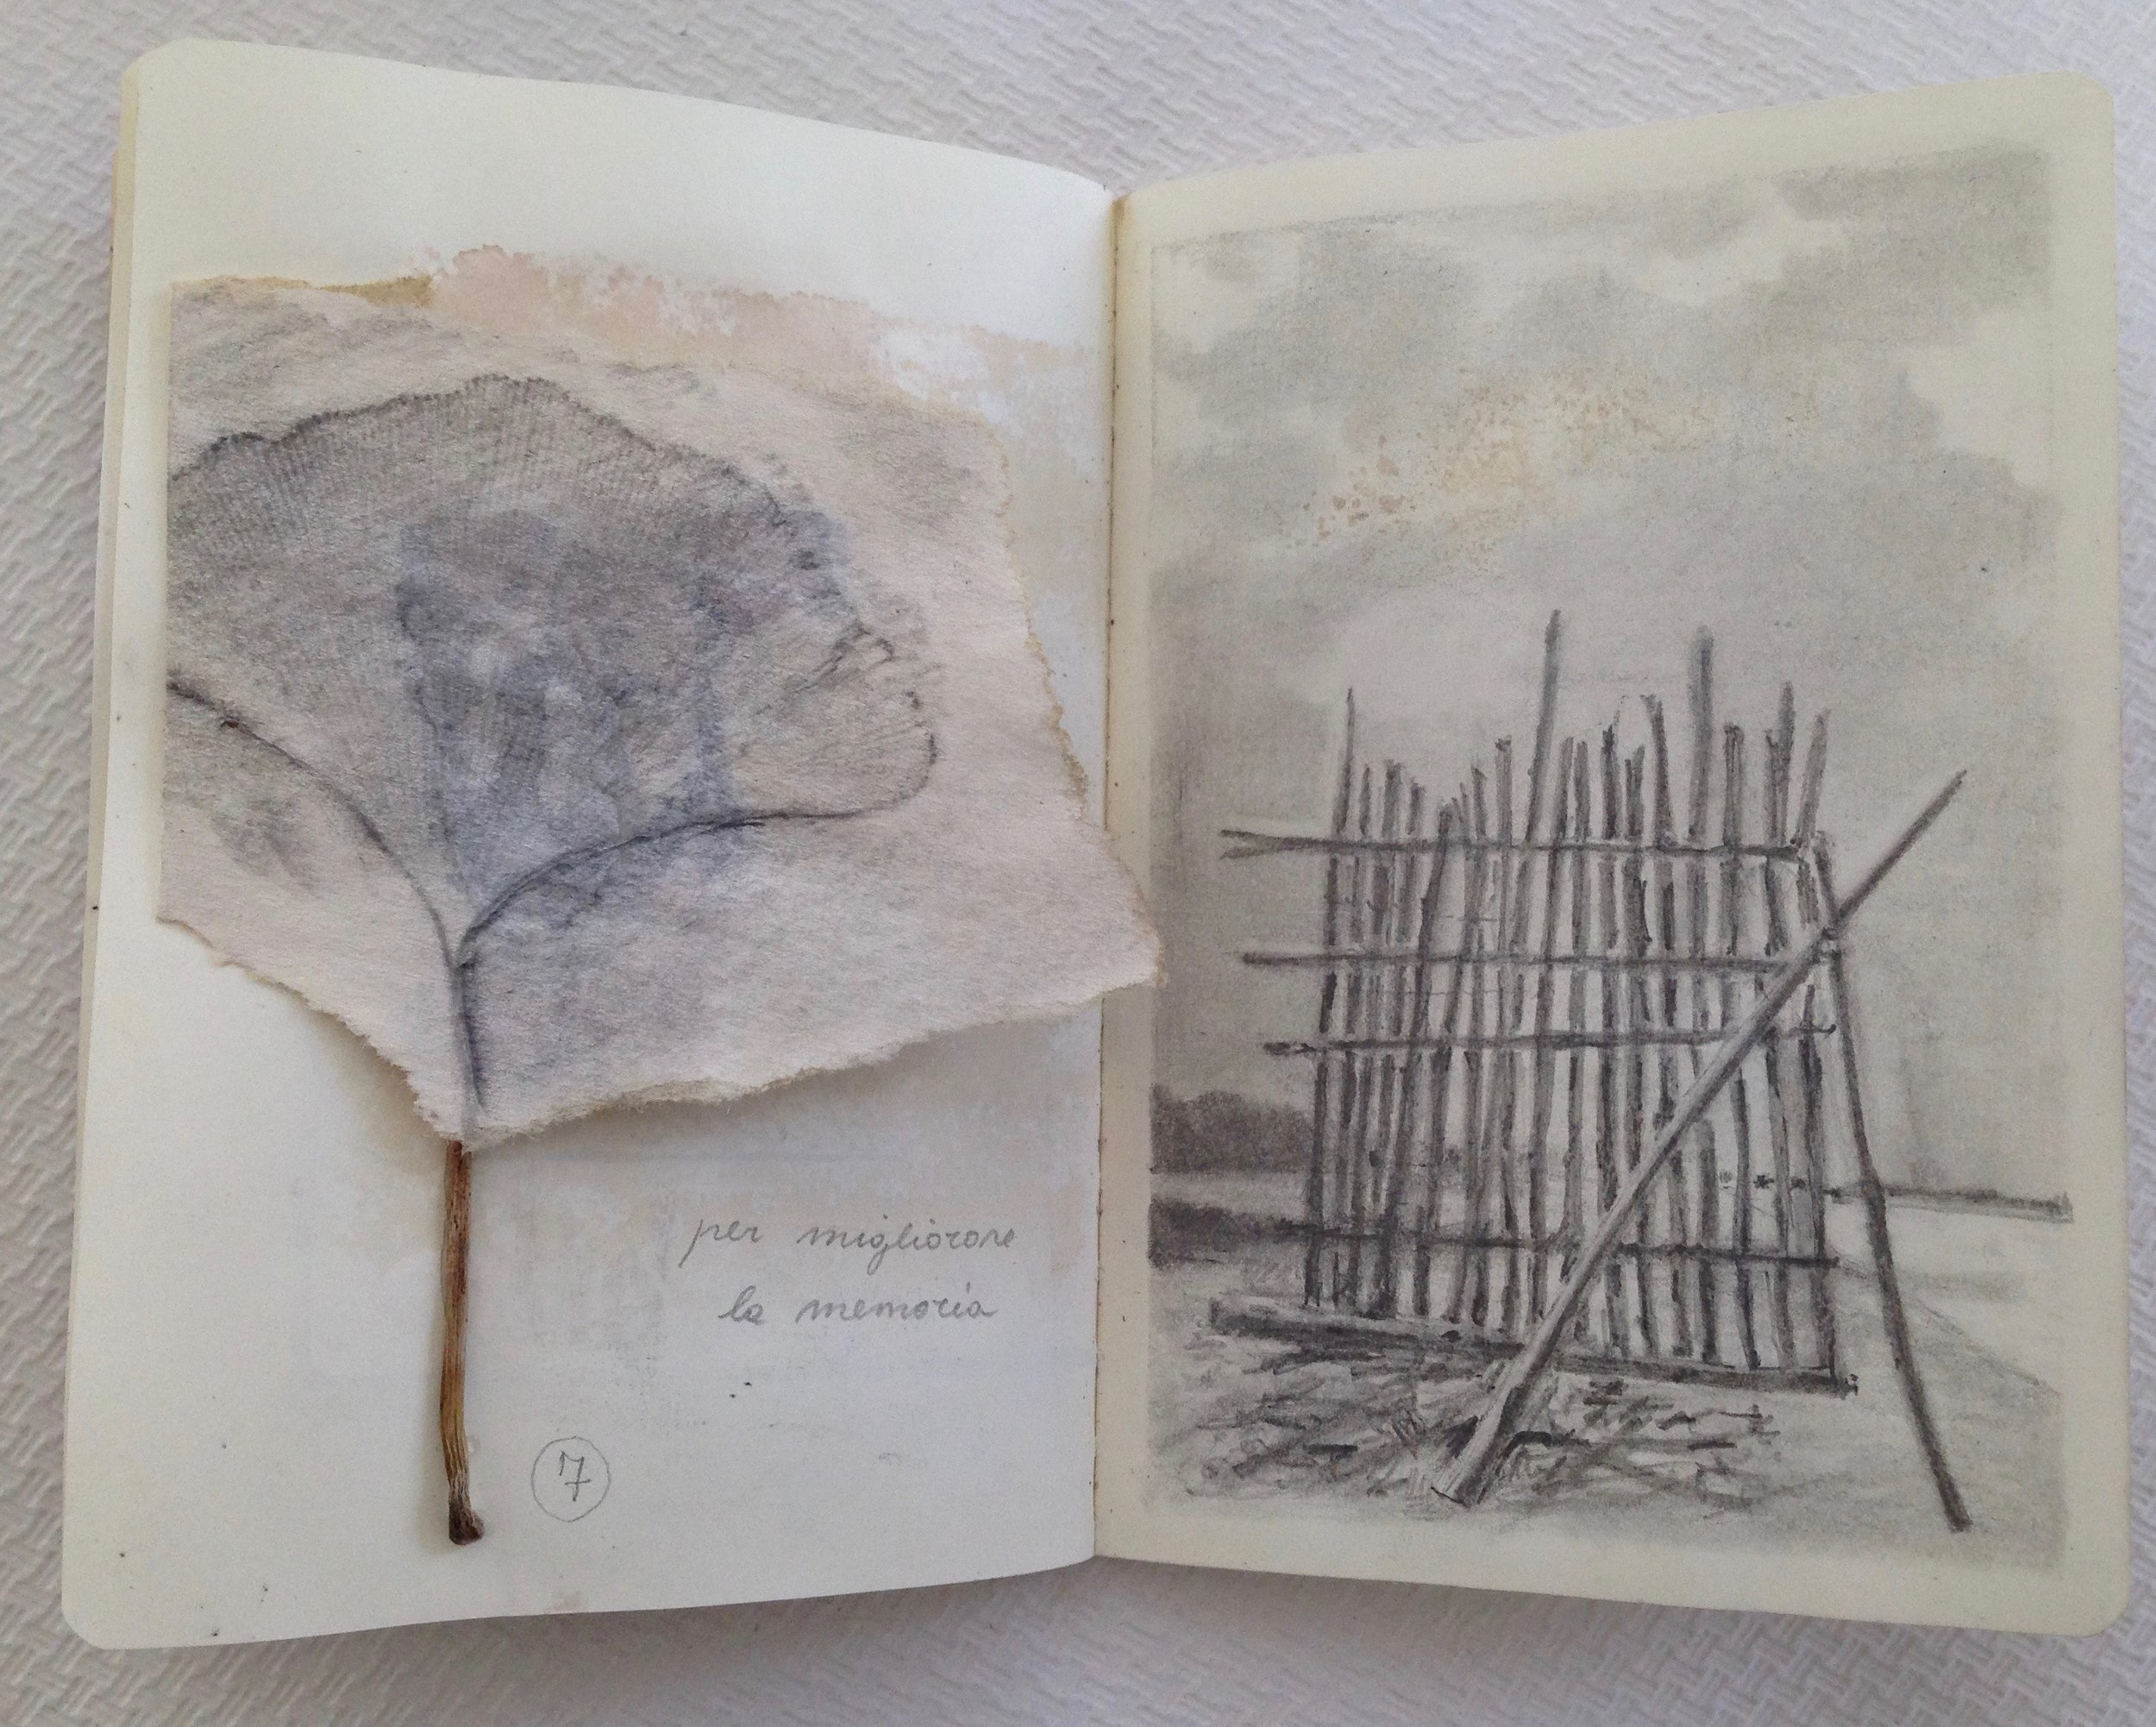 passeggiata silenziosa - pencil drawing- watercolor, collagepersonal project during the workshop with J. Consejo2017